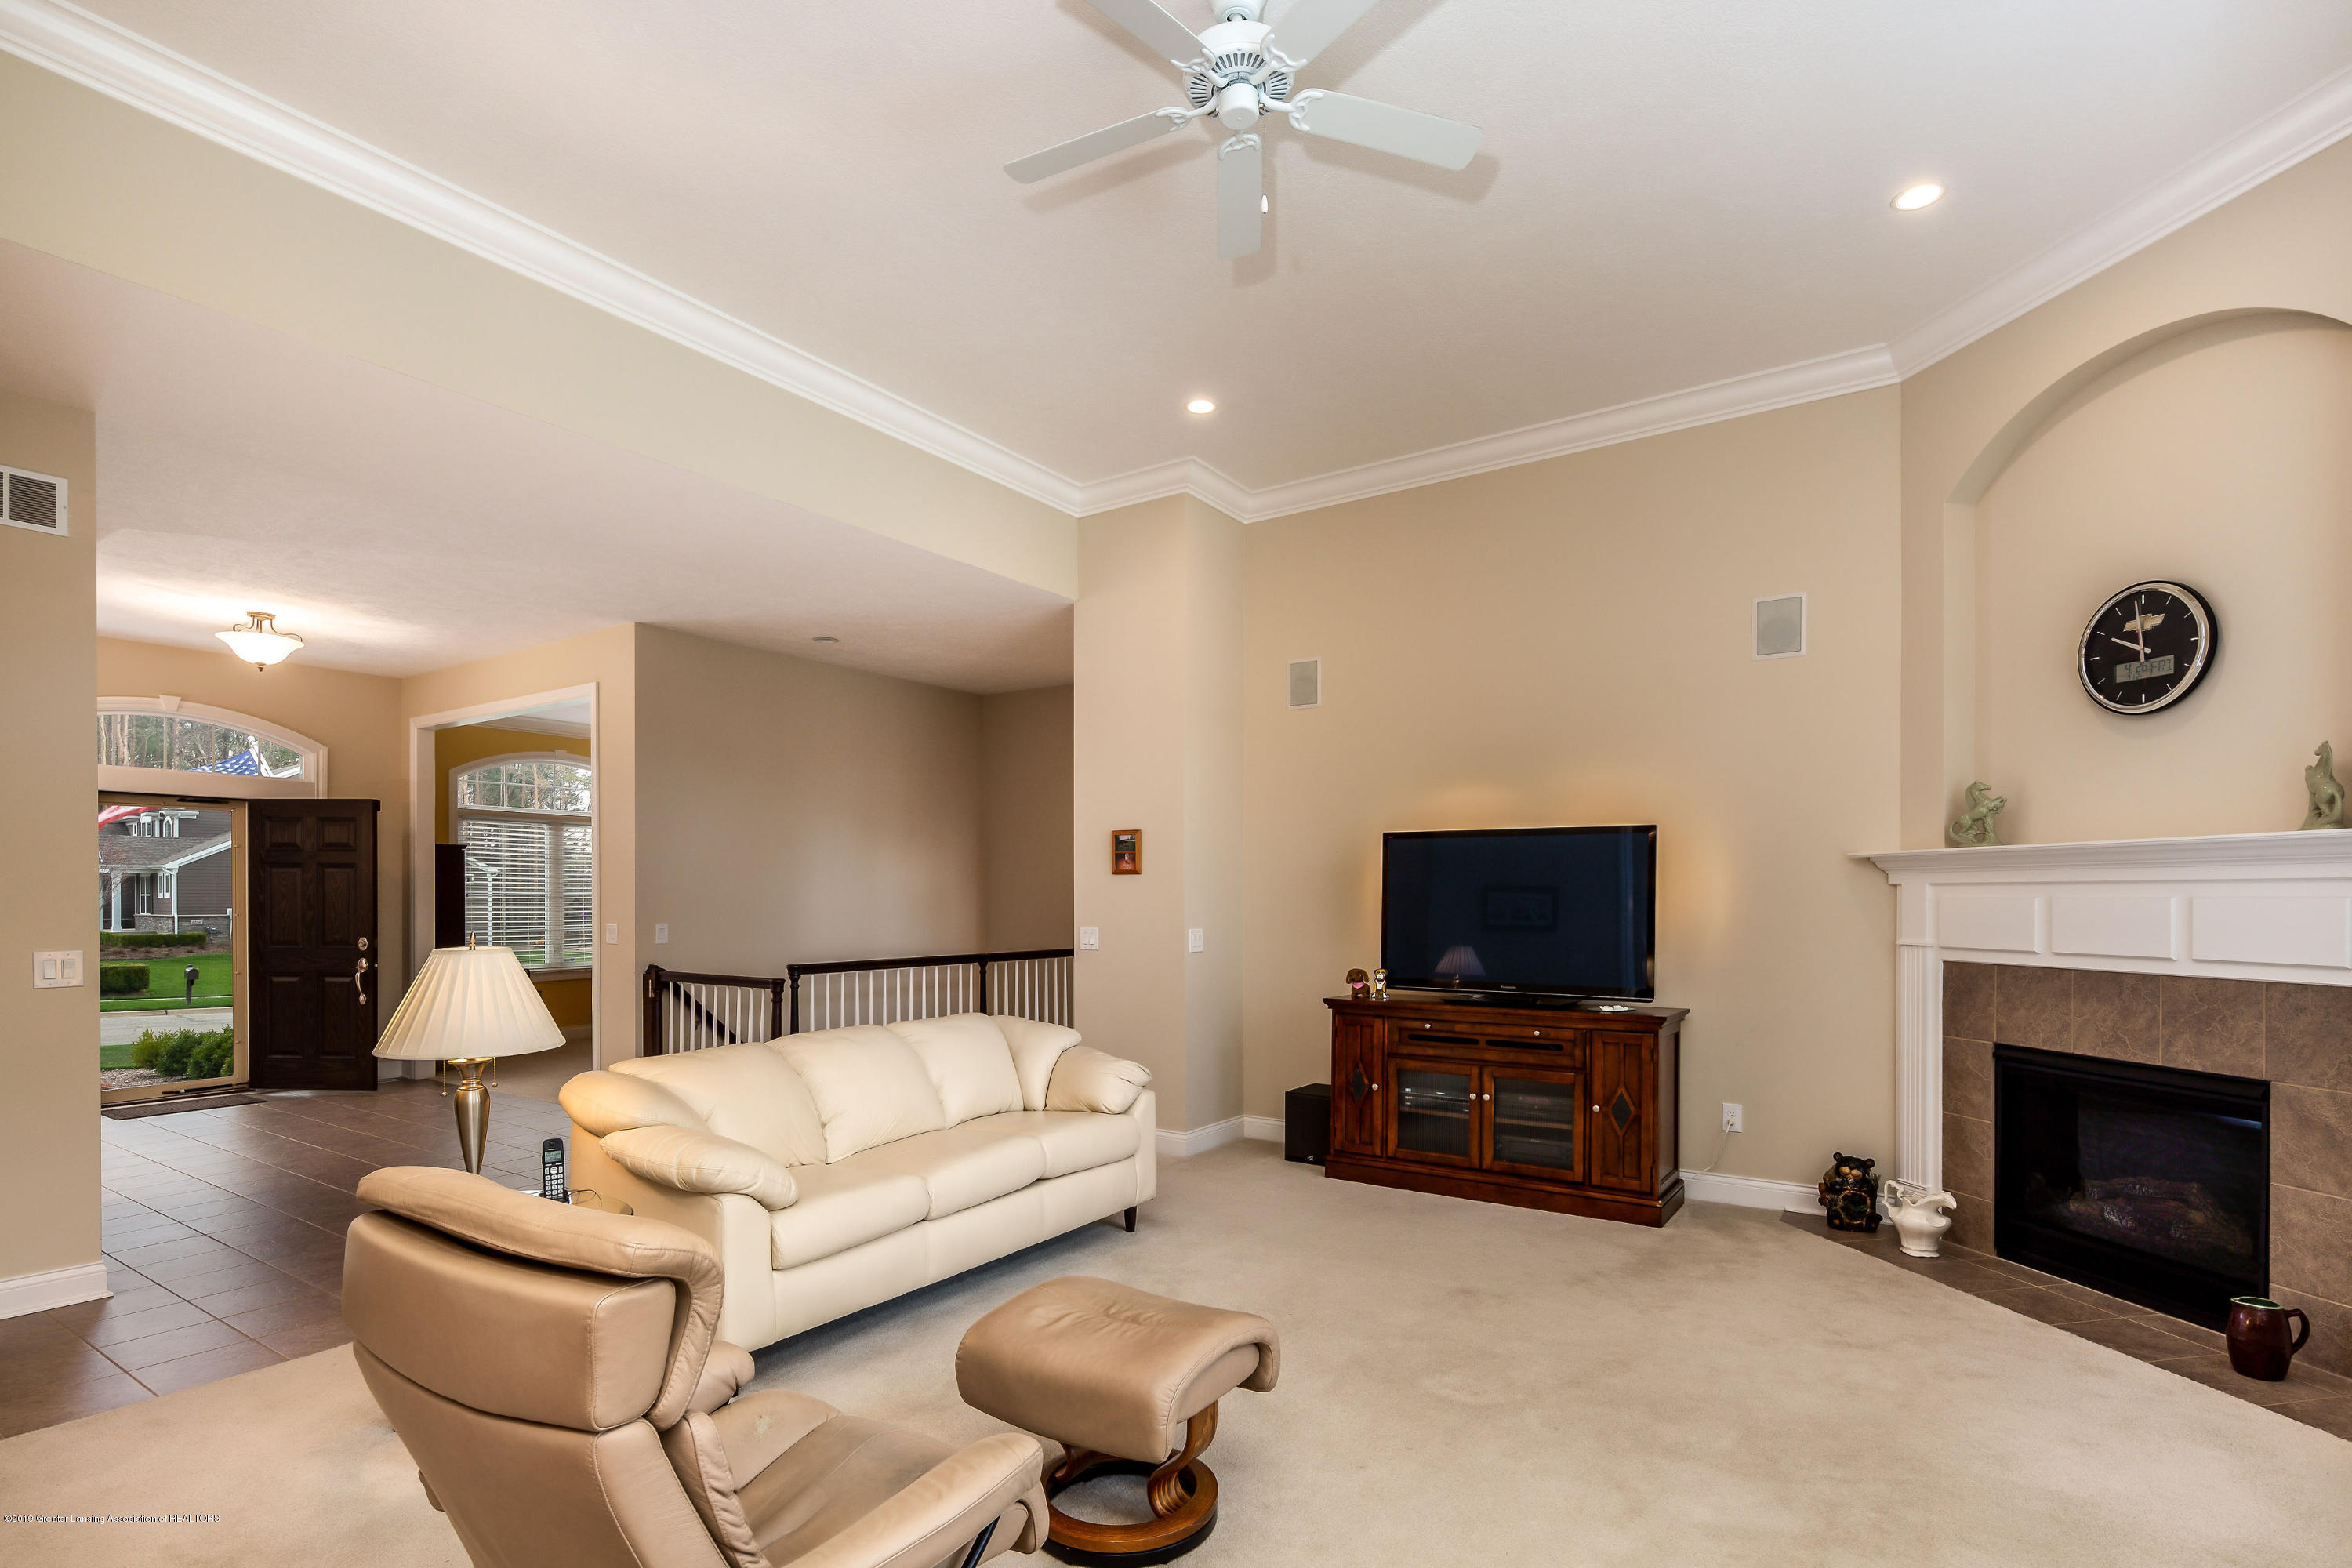 6257 Mereford Ct - 20190426-942A2799-Edit - 5